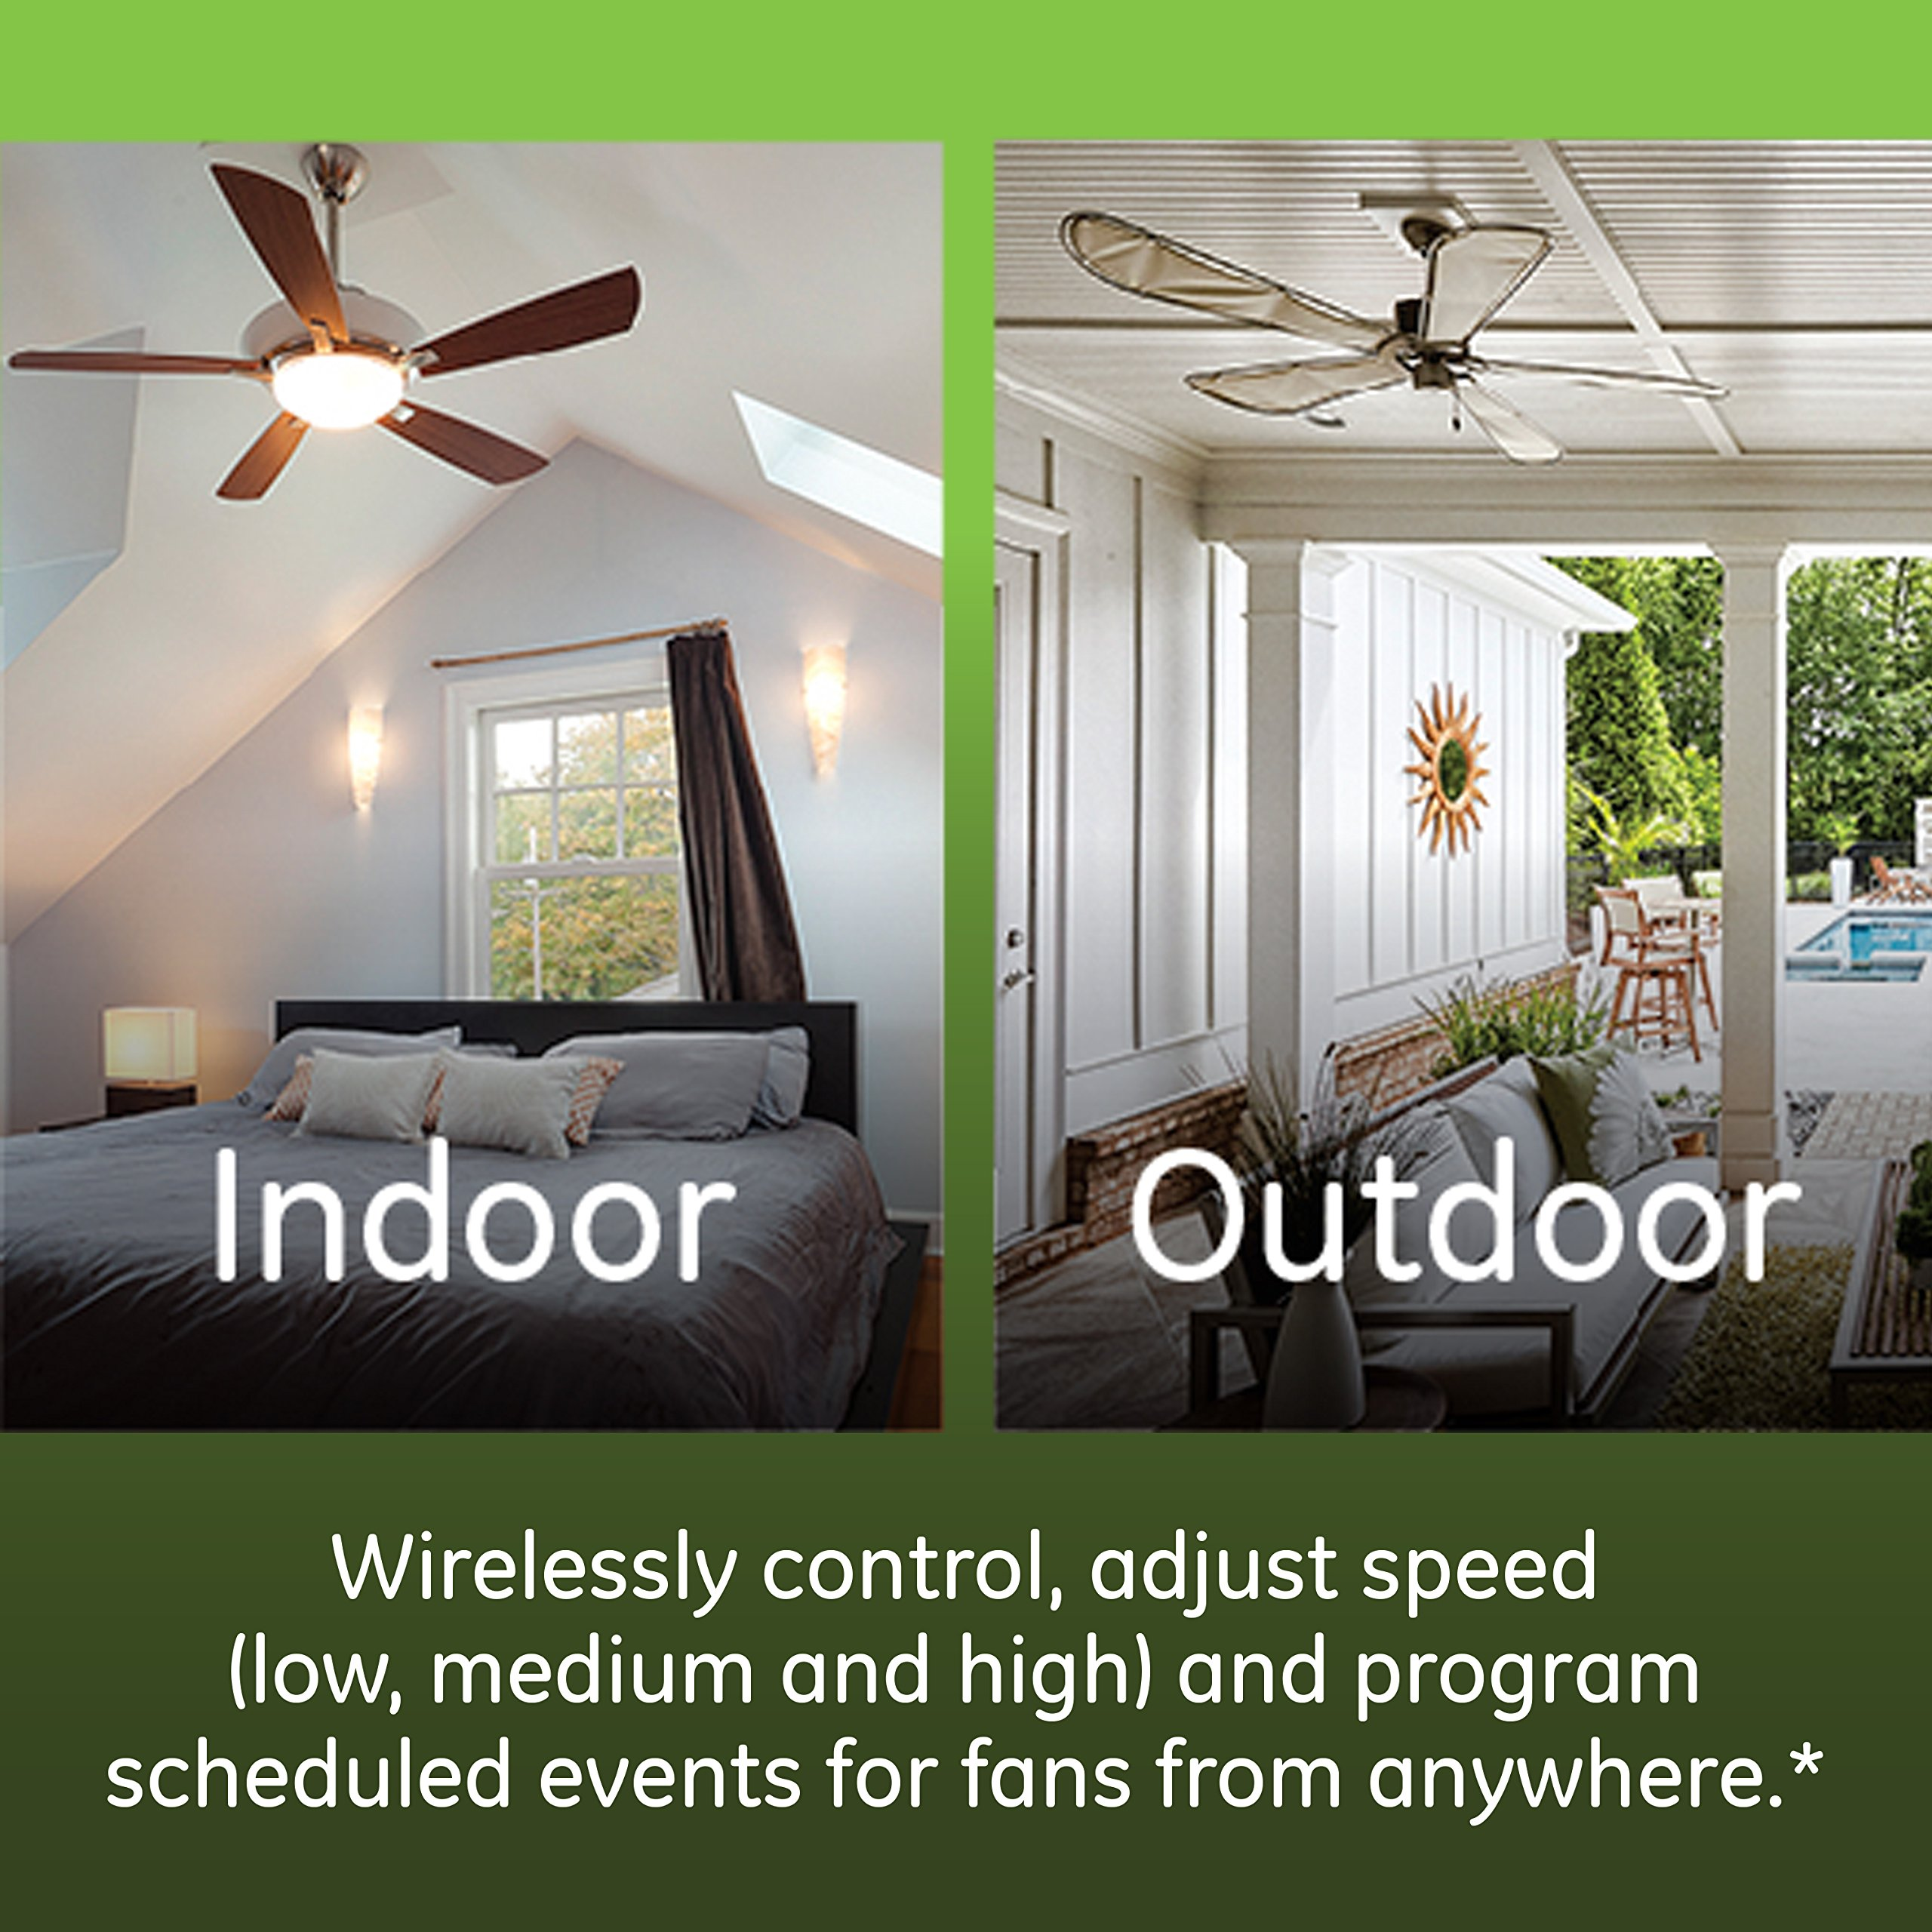 GE Enbrighten Z-Wave Plus Smart Fan Control, Speed ONLY, in-Wall, Includes White & Lt. Almond Paddles, Zwave Hub Required, Works with SmartThings Wink and Alexa, 14287 by GE (Image #3)